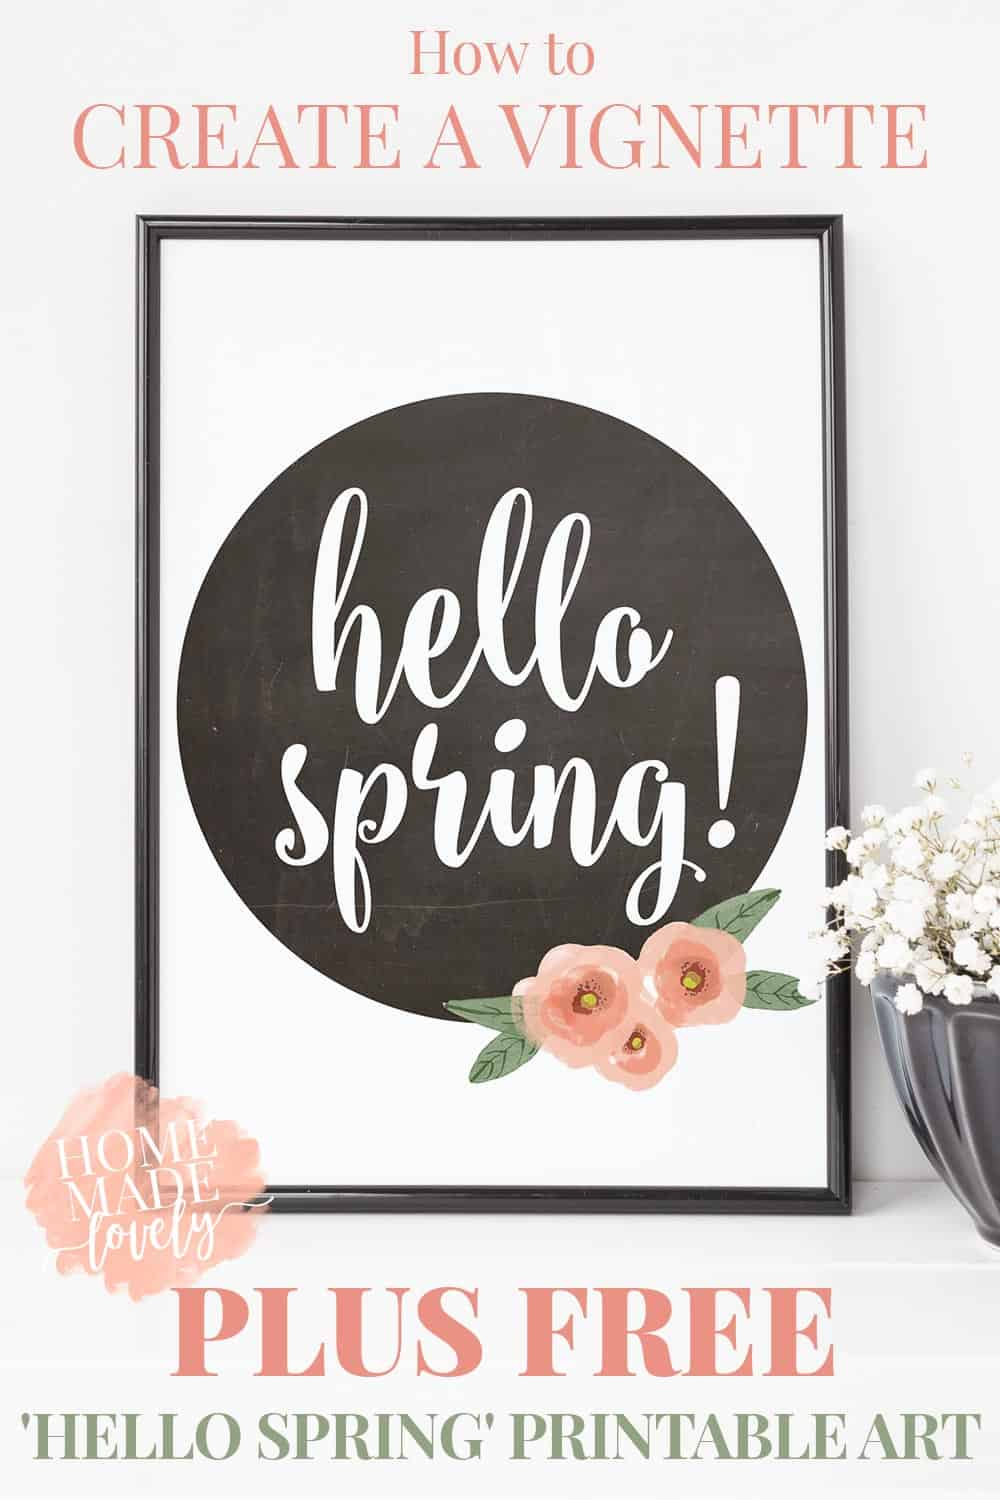 Vignettes create beautiful spaces and help to avoid clutter. Here's how to create a vignette, plus a Hello Spring free printable!